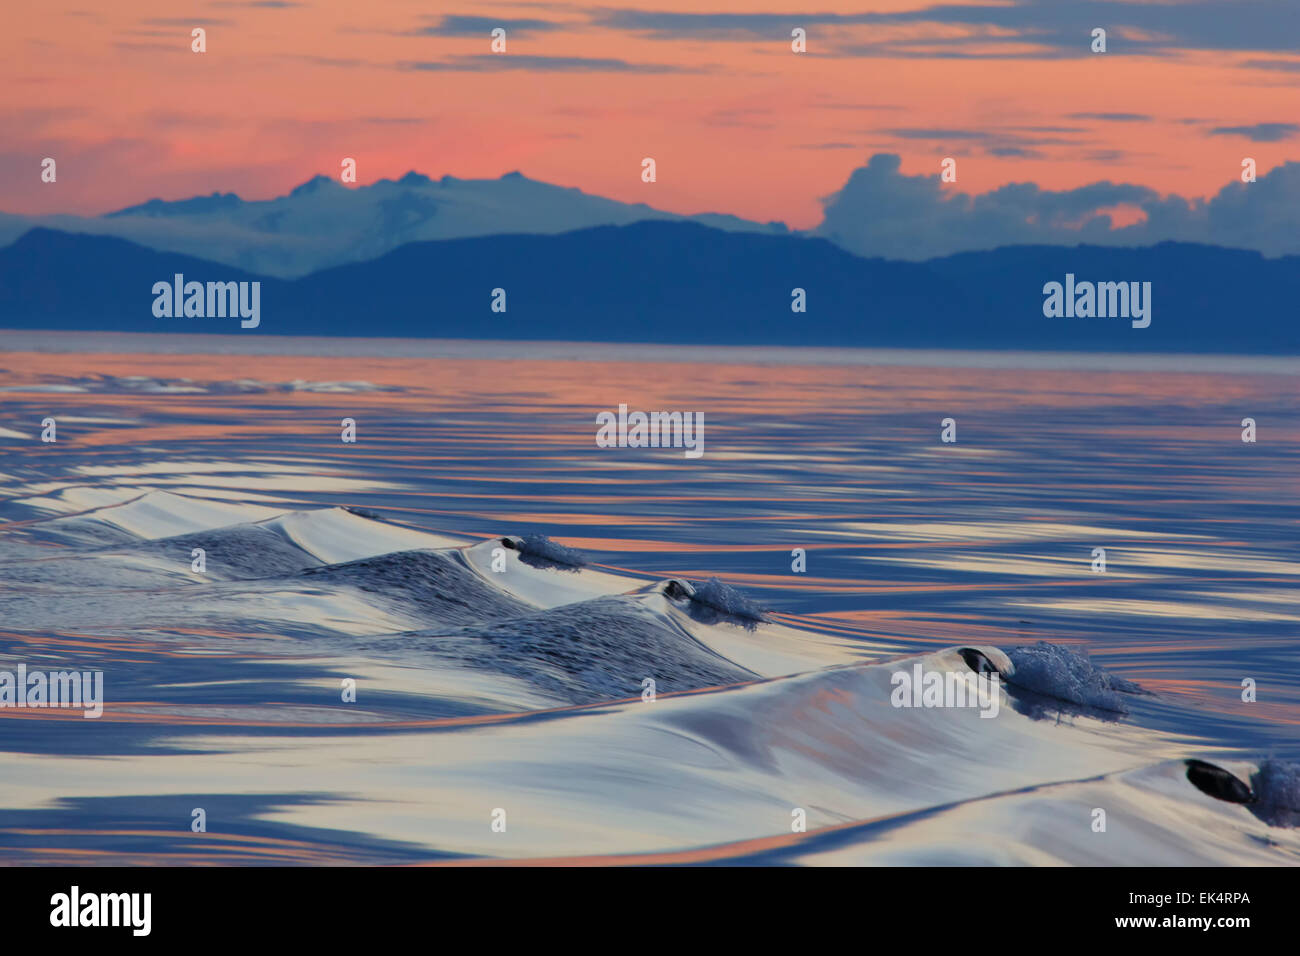 Sunset, Cabo Fanshaw, Tongass National Forest, Alaska. Imagen De Stock